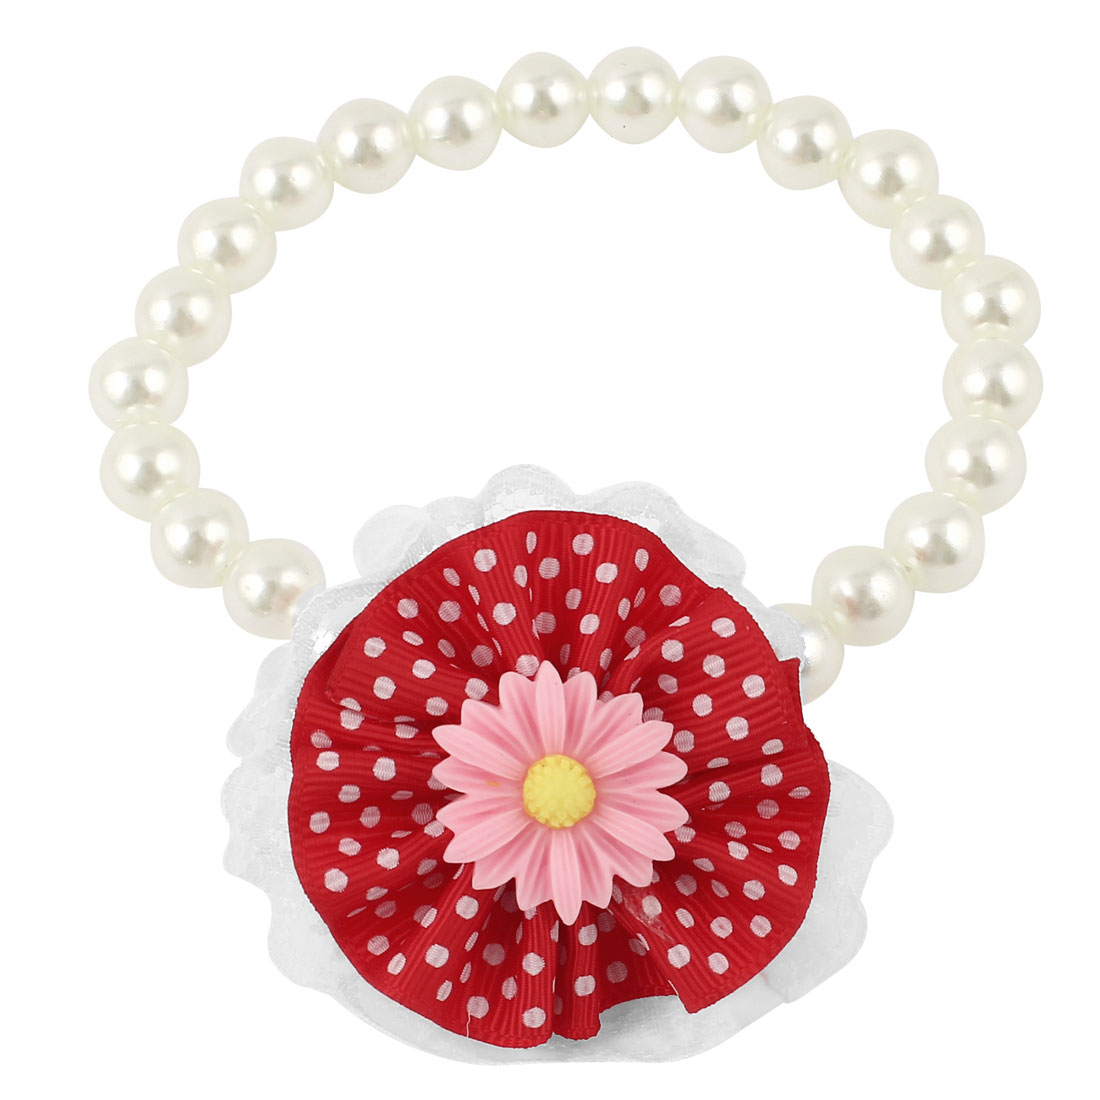 Lace Red Flower Accent Pet Dog Plastic Beads Pearls Collar Necklace White S